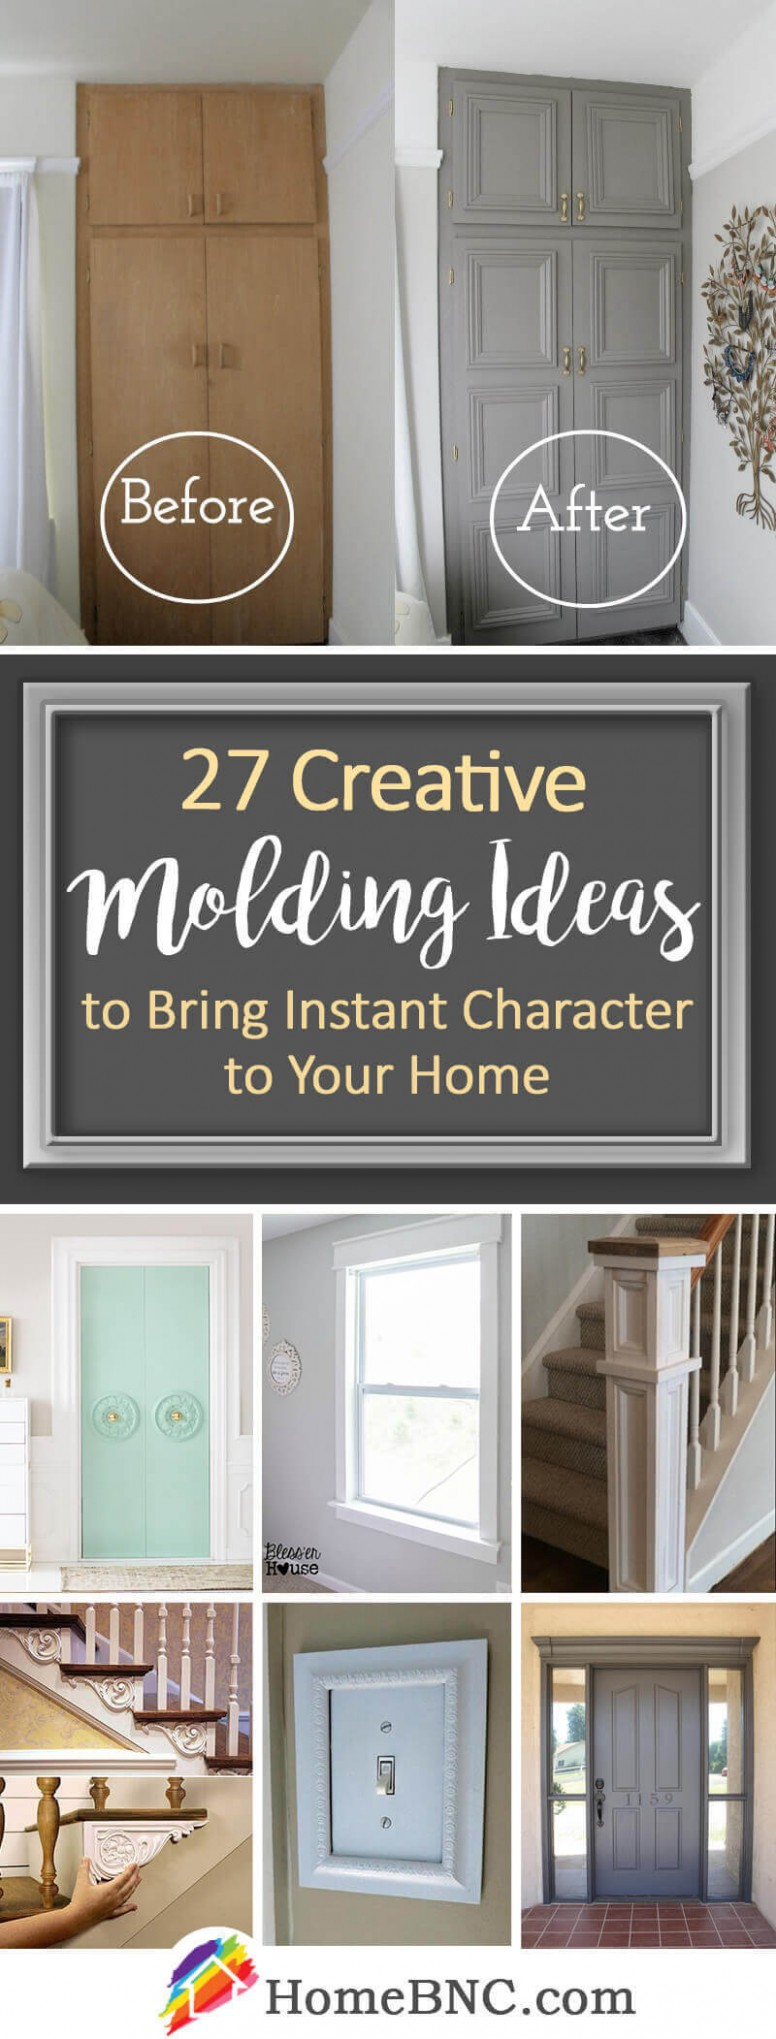 11 Best Molding Ideas and Designs for 11 - Dining Room Moulding Ideas